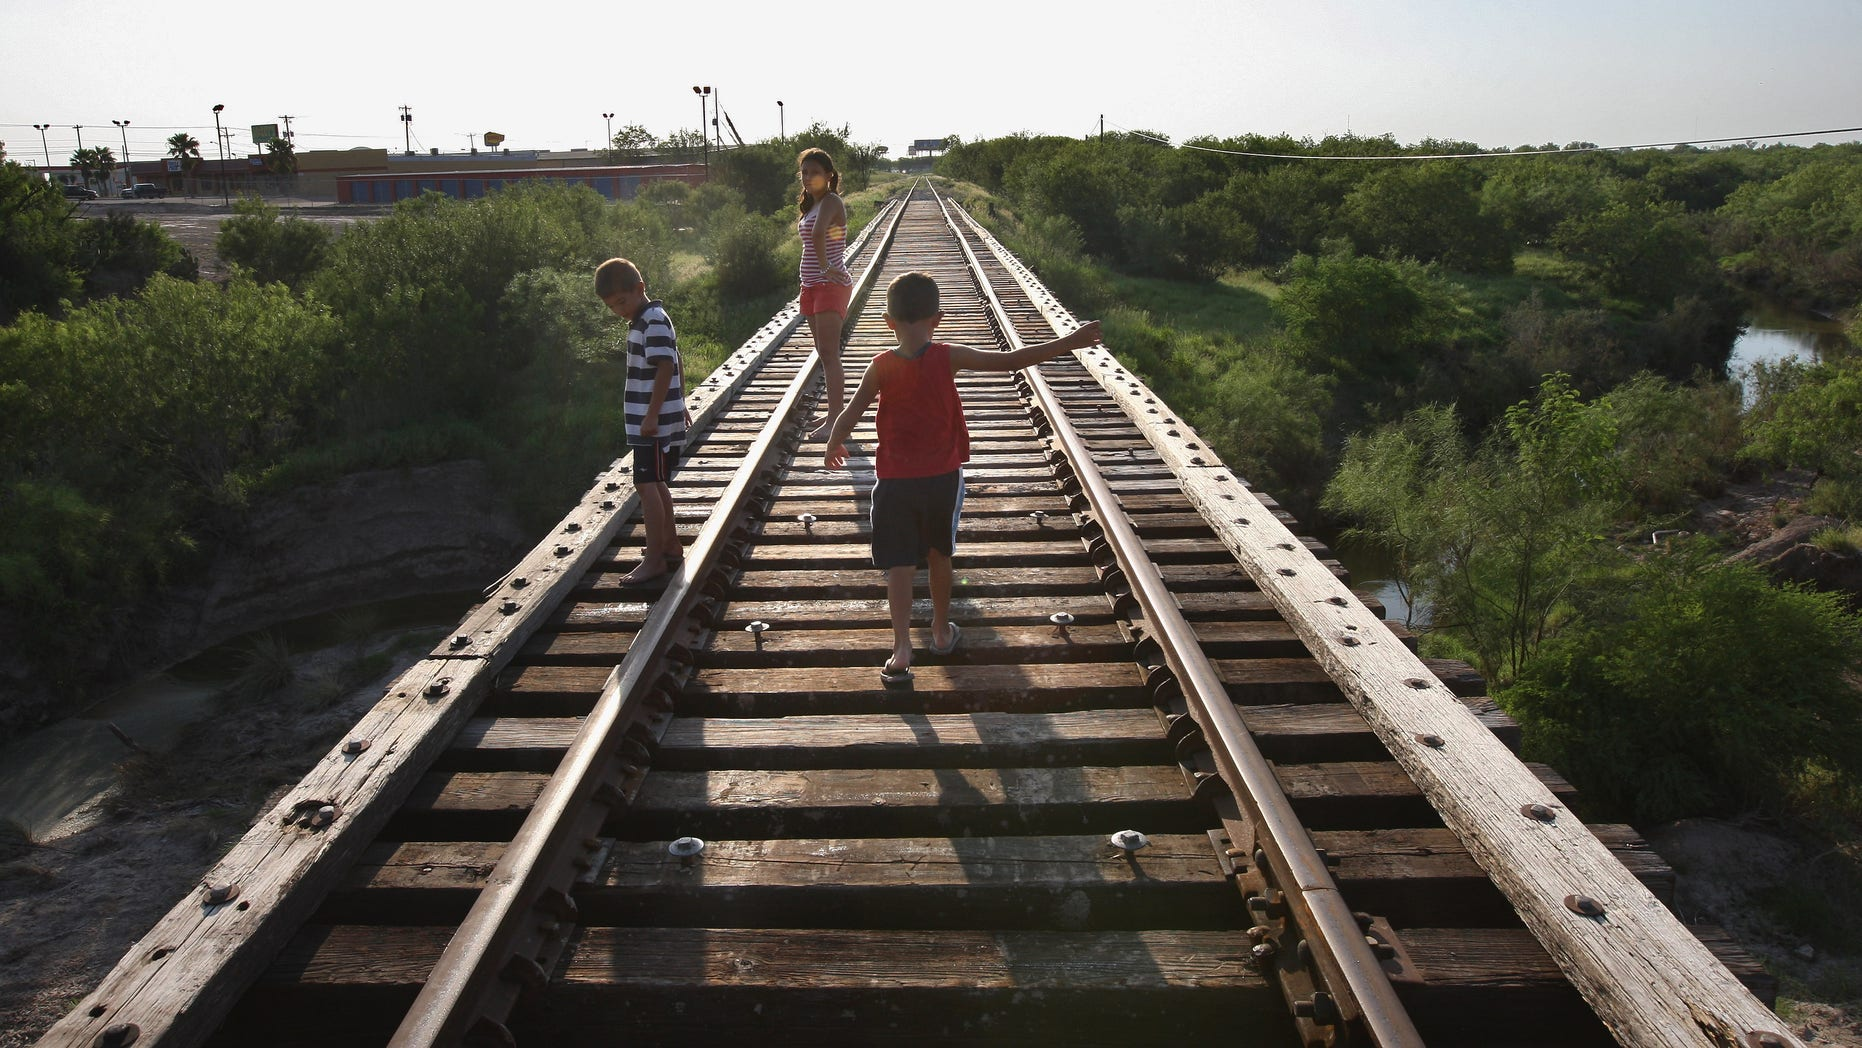 RIO GRANDE CITY, TX - AUGUST 05:  Children walk across a railroad bridge August 5, 2008 in Rio Grande City, Starr County,Texas, along the border with Mexico. By many social indicators, Starr County is the poorest county in the United States. Few of its residents have full health or dental insurance and many of them must travel across the border to Mexico in order to get medical attention and buy medicine. The two-week Operation Lone Star, run by the Texas armed forces and state health officials, provided free medical care to more than 10,000 people in areas along the Texas-Mexico border.  (Photo by John Moore/Getty Images)